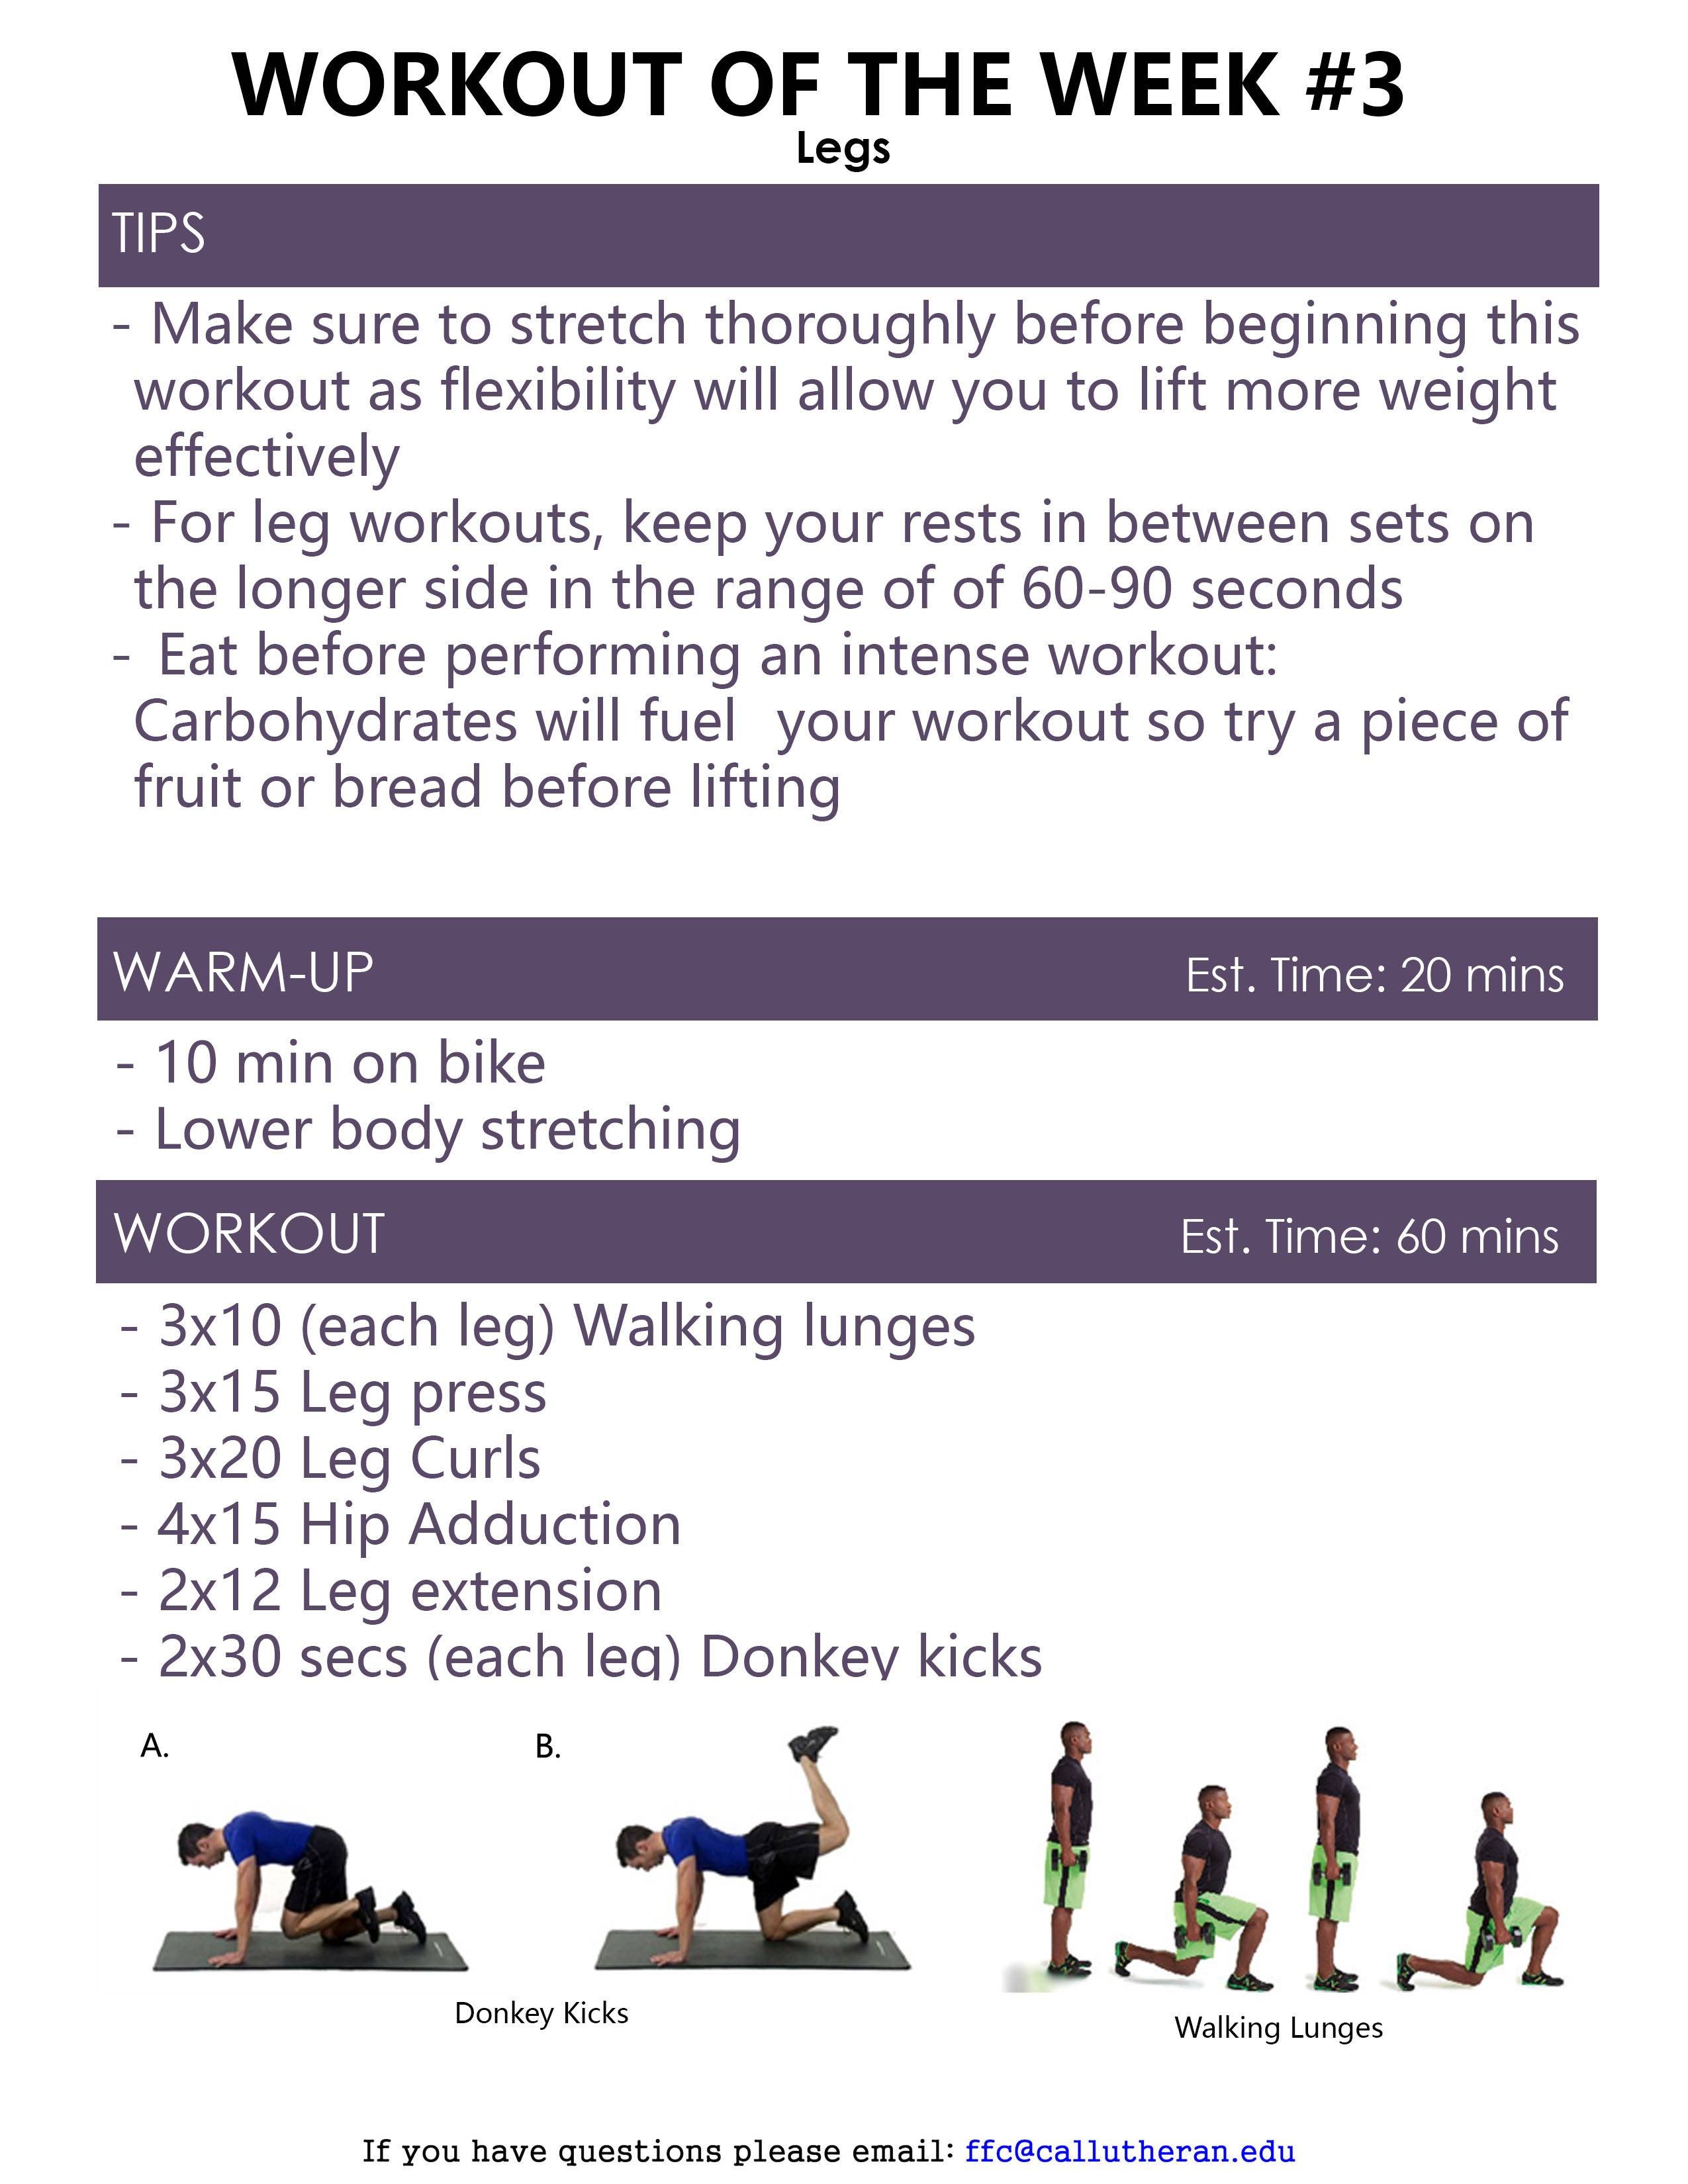 Workout of the Week - Forrest Fitness Center | Cal Lutheran